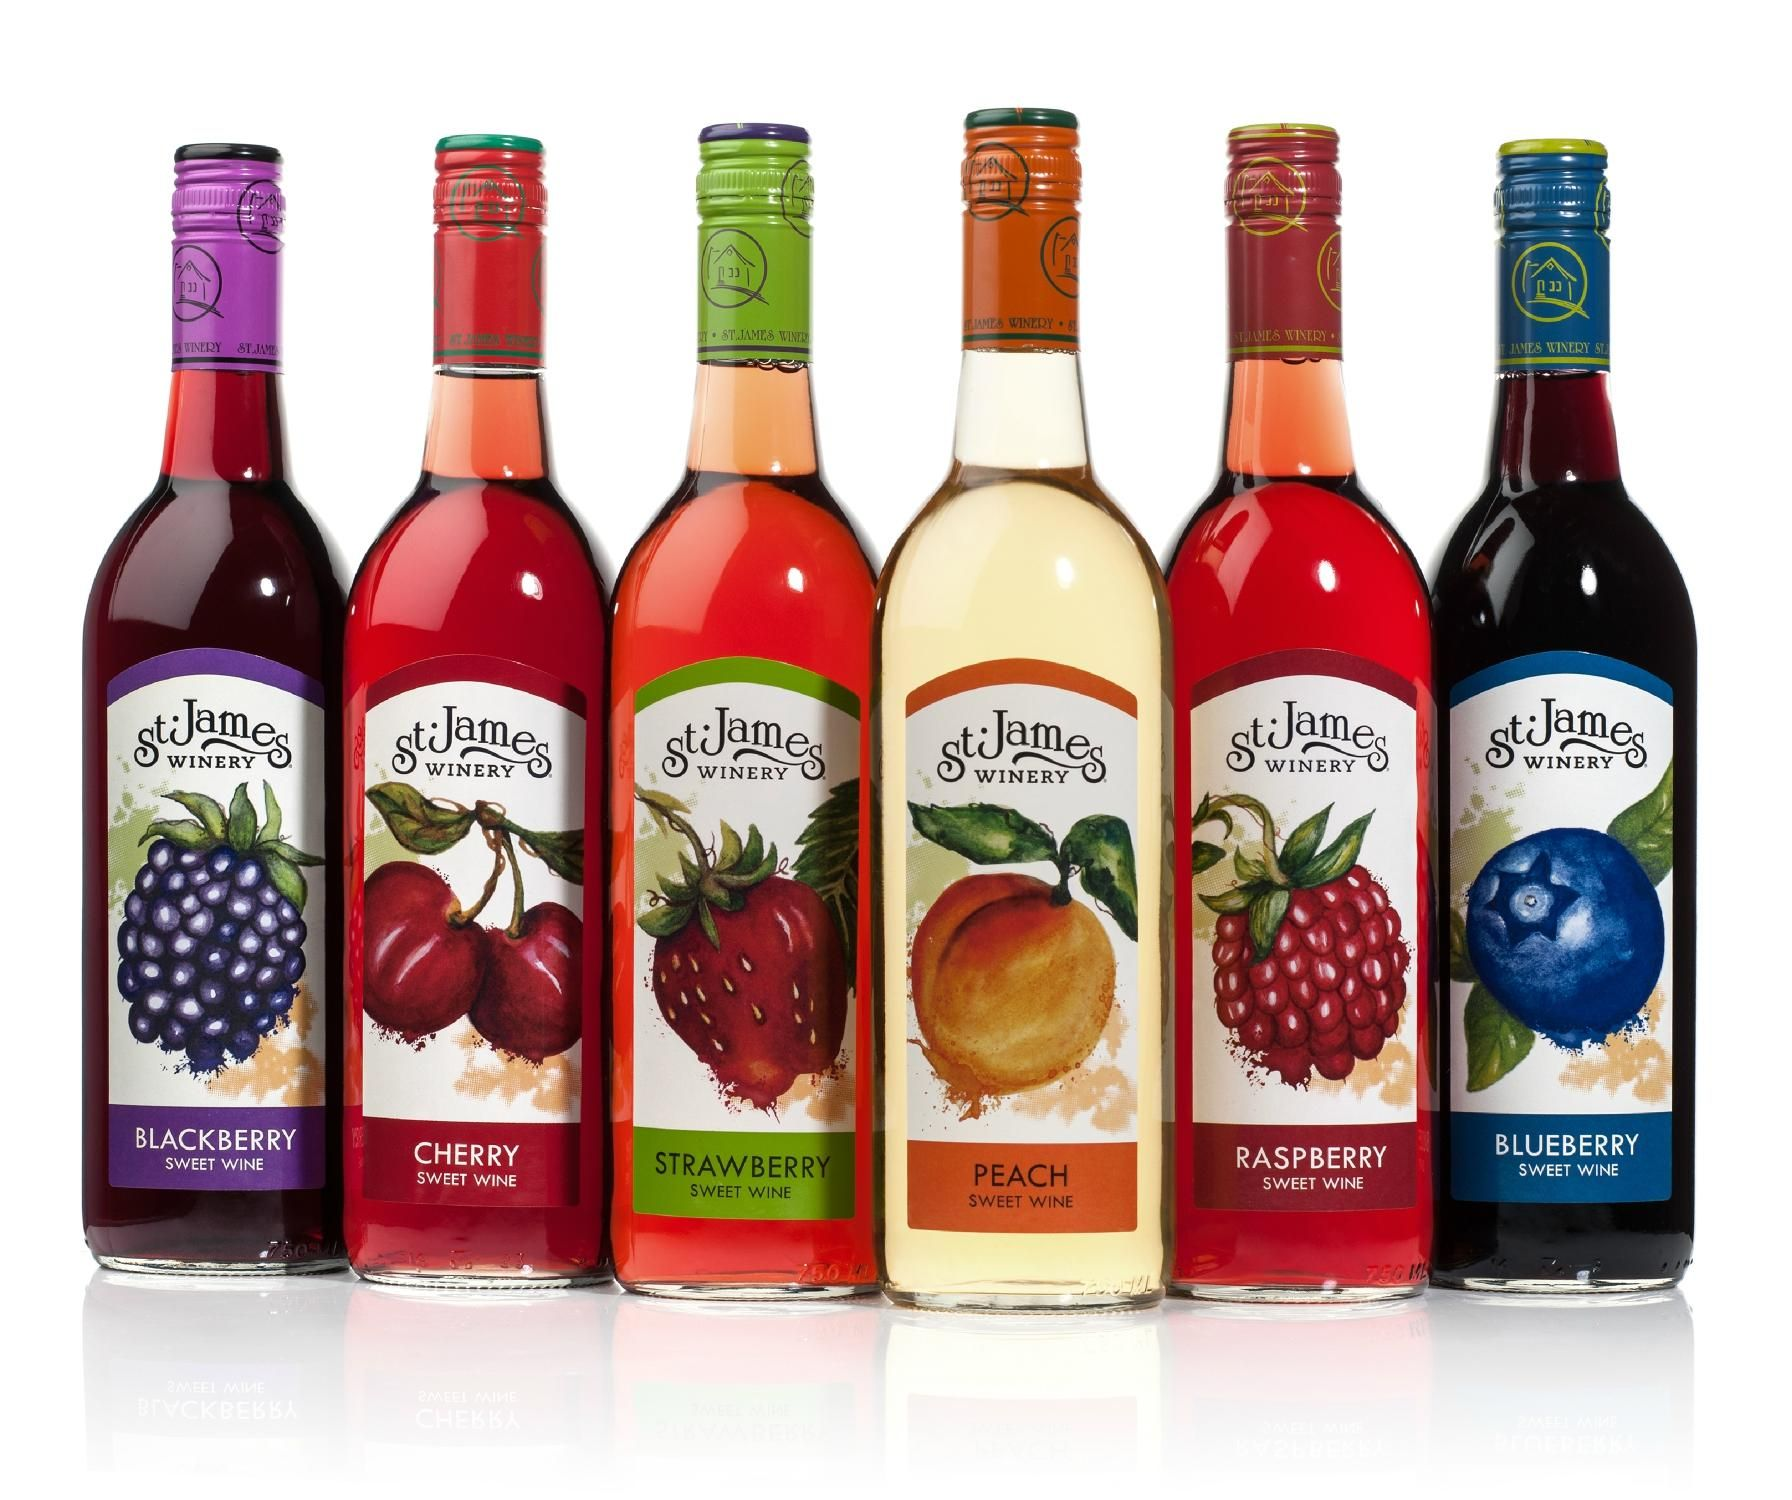 St James Winery Saint James Mo Top Tips Before You Go Tripadvisor Fruit Wine Sweet Wine Strawberry Wine